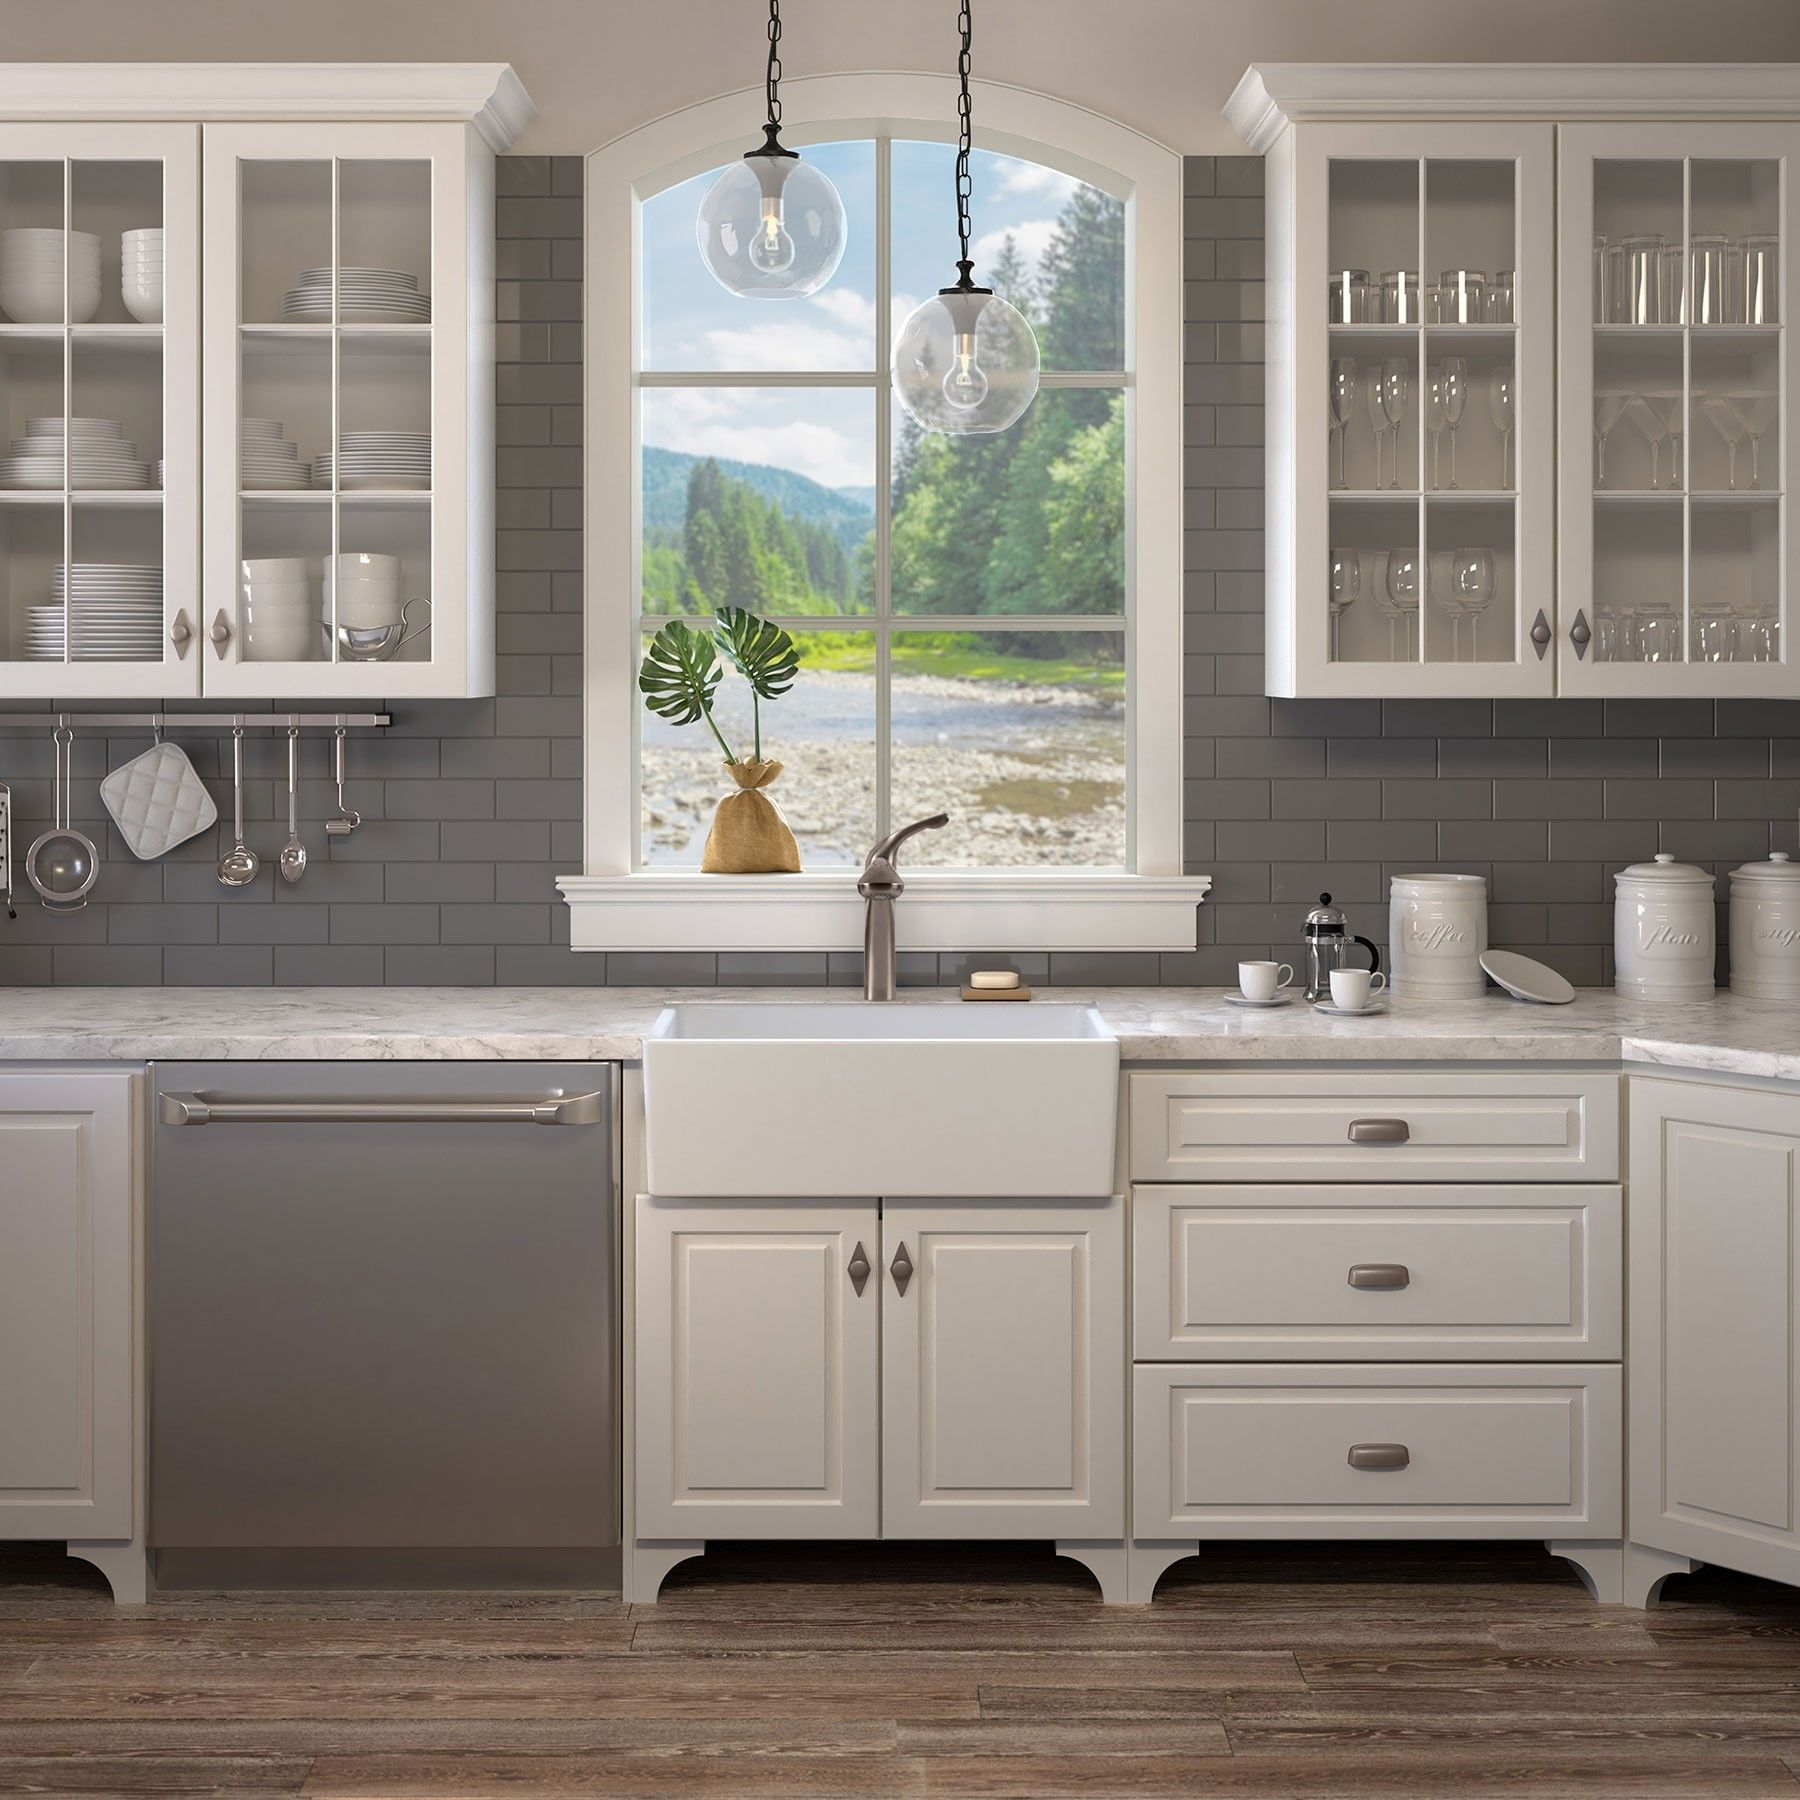 Surrey 30 Fireclay Farmhouse Kitchen Sink Farmhouse Sink Kitchen New Kitchen Cabinets Kitchen Cabinets